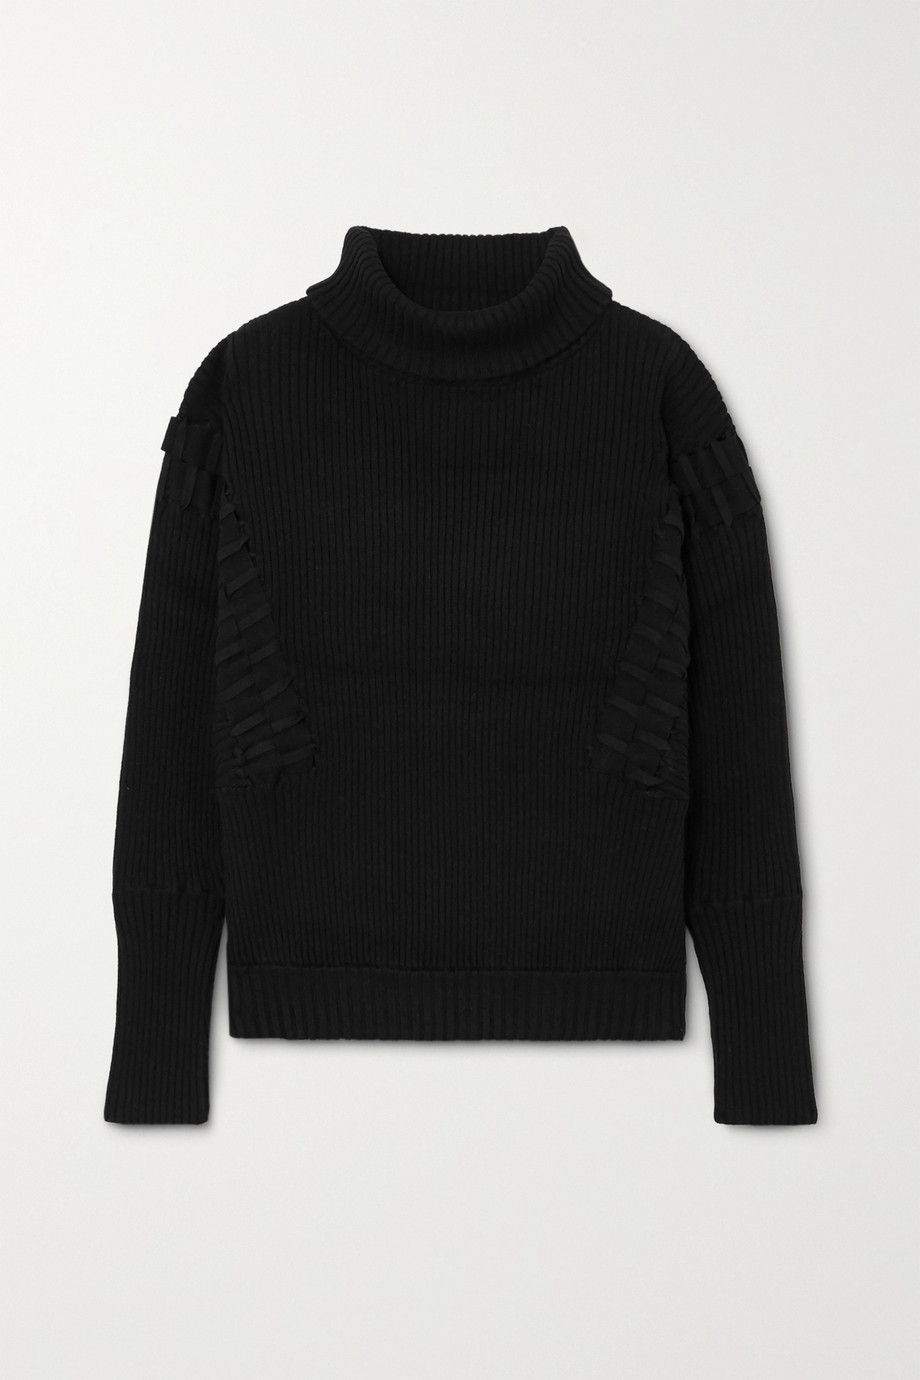 palmer//harding Ateli ribbed cotton and cashmere-blend turtleneck sweater